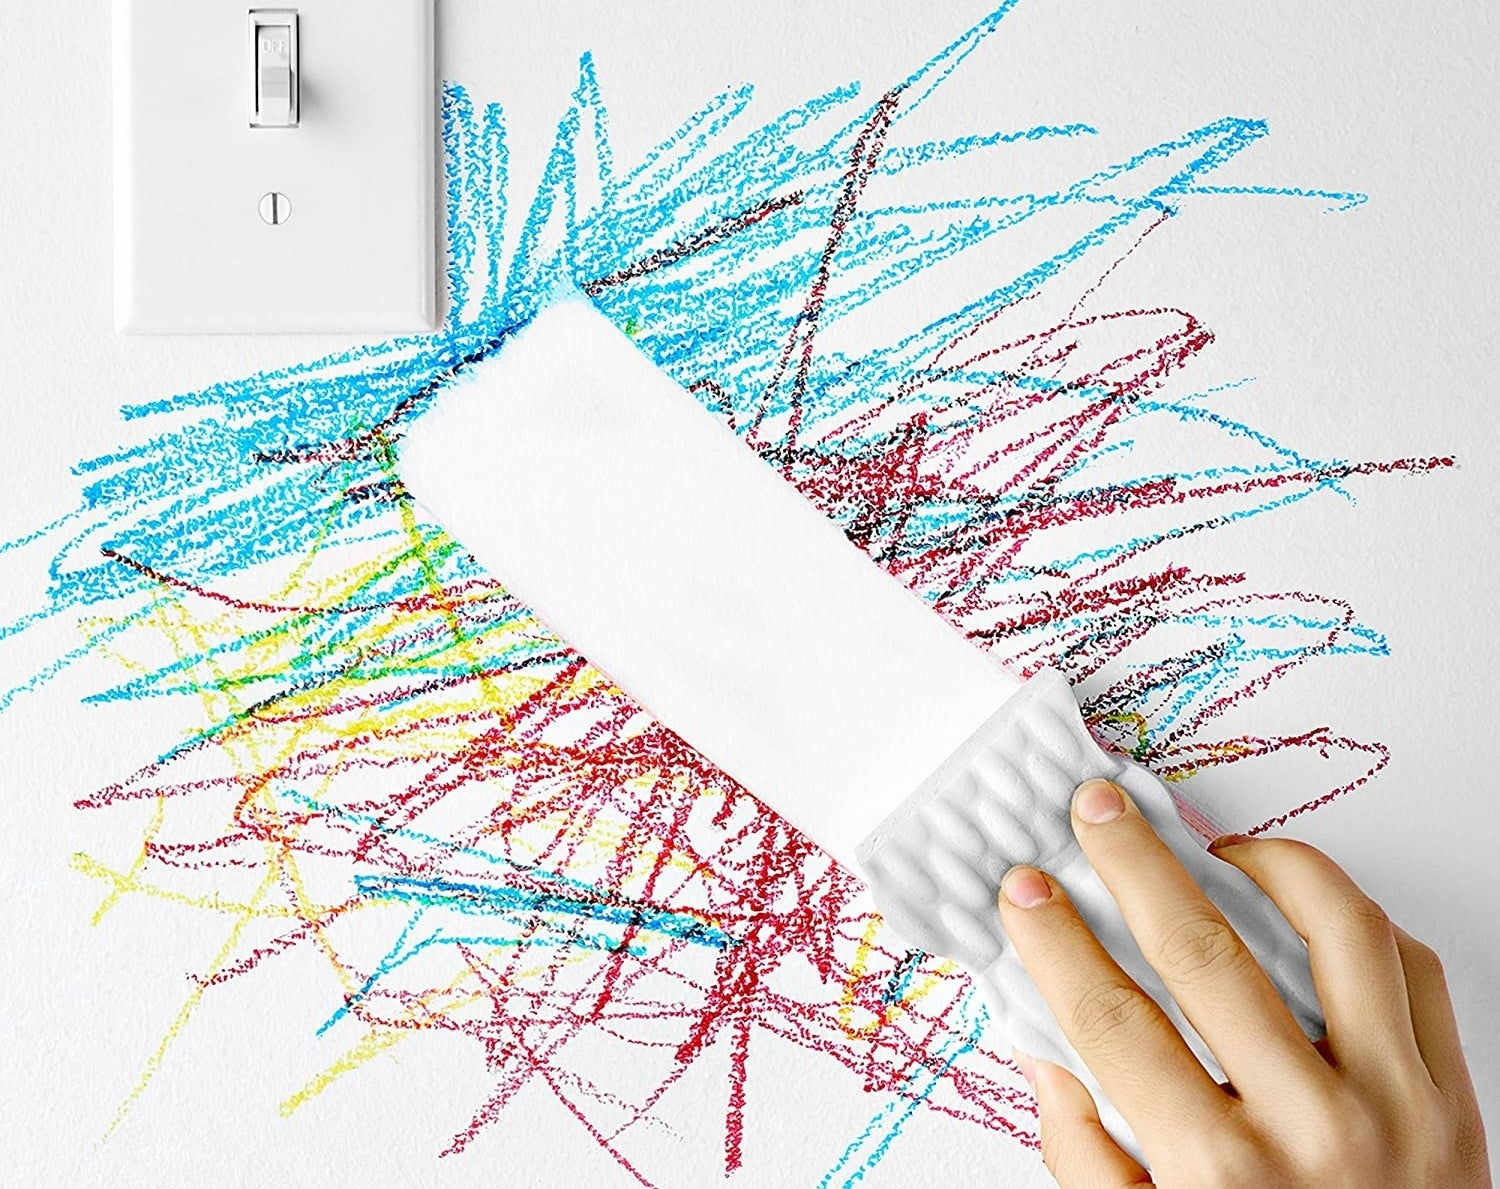 A person wiping away crayon marks on a wall with a Magic Earaser